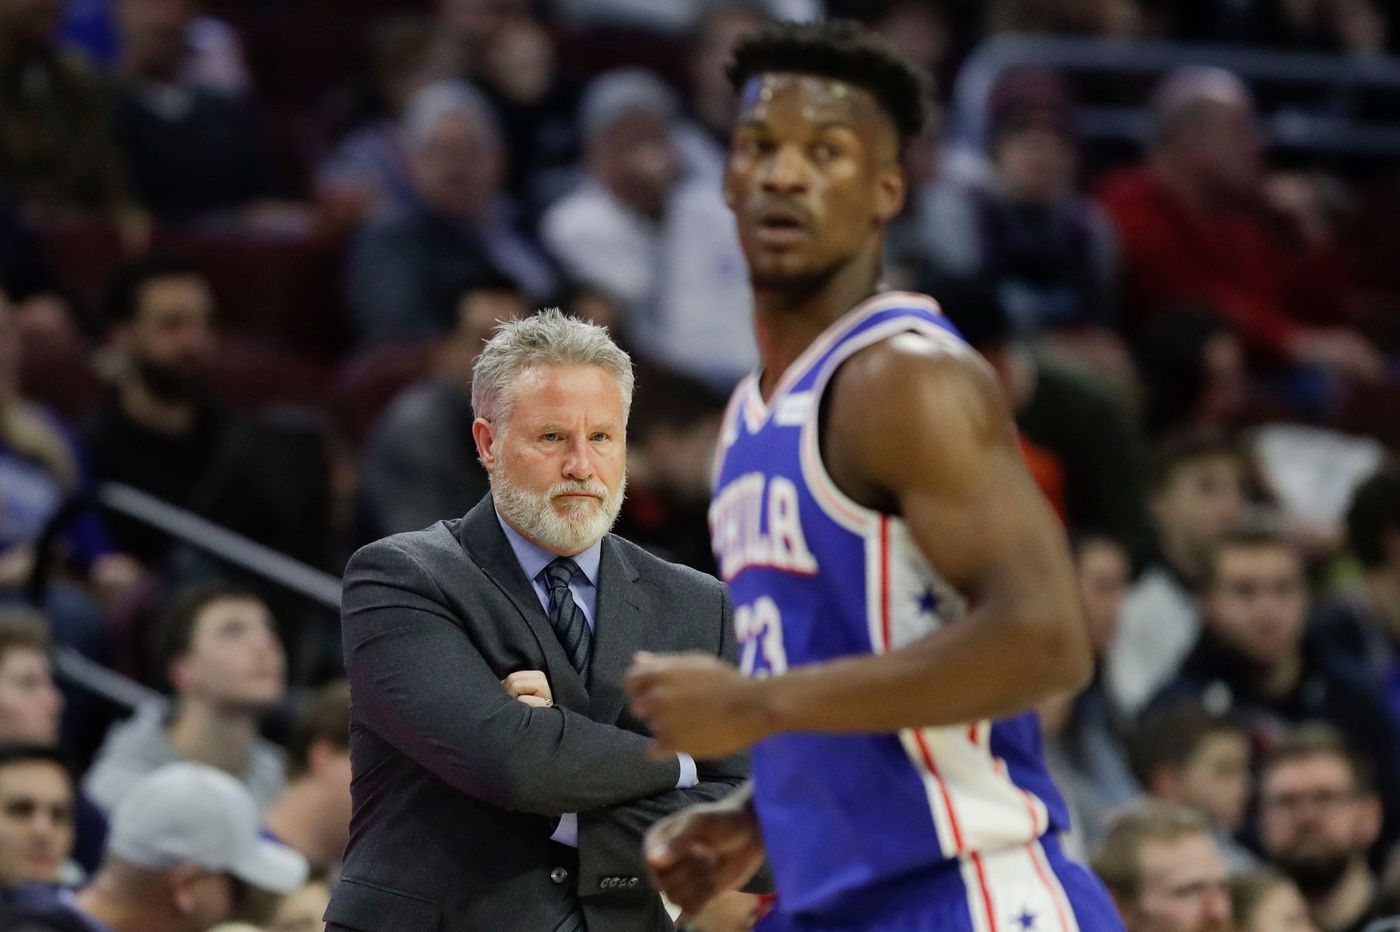 Brett Brown is on the hottest seat, and the Sixers front office should feel some heat too | David Murphy